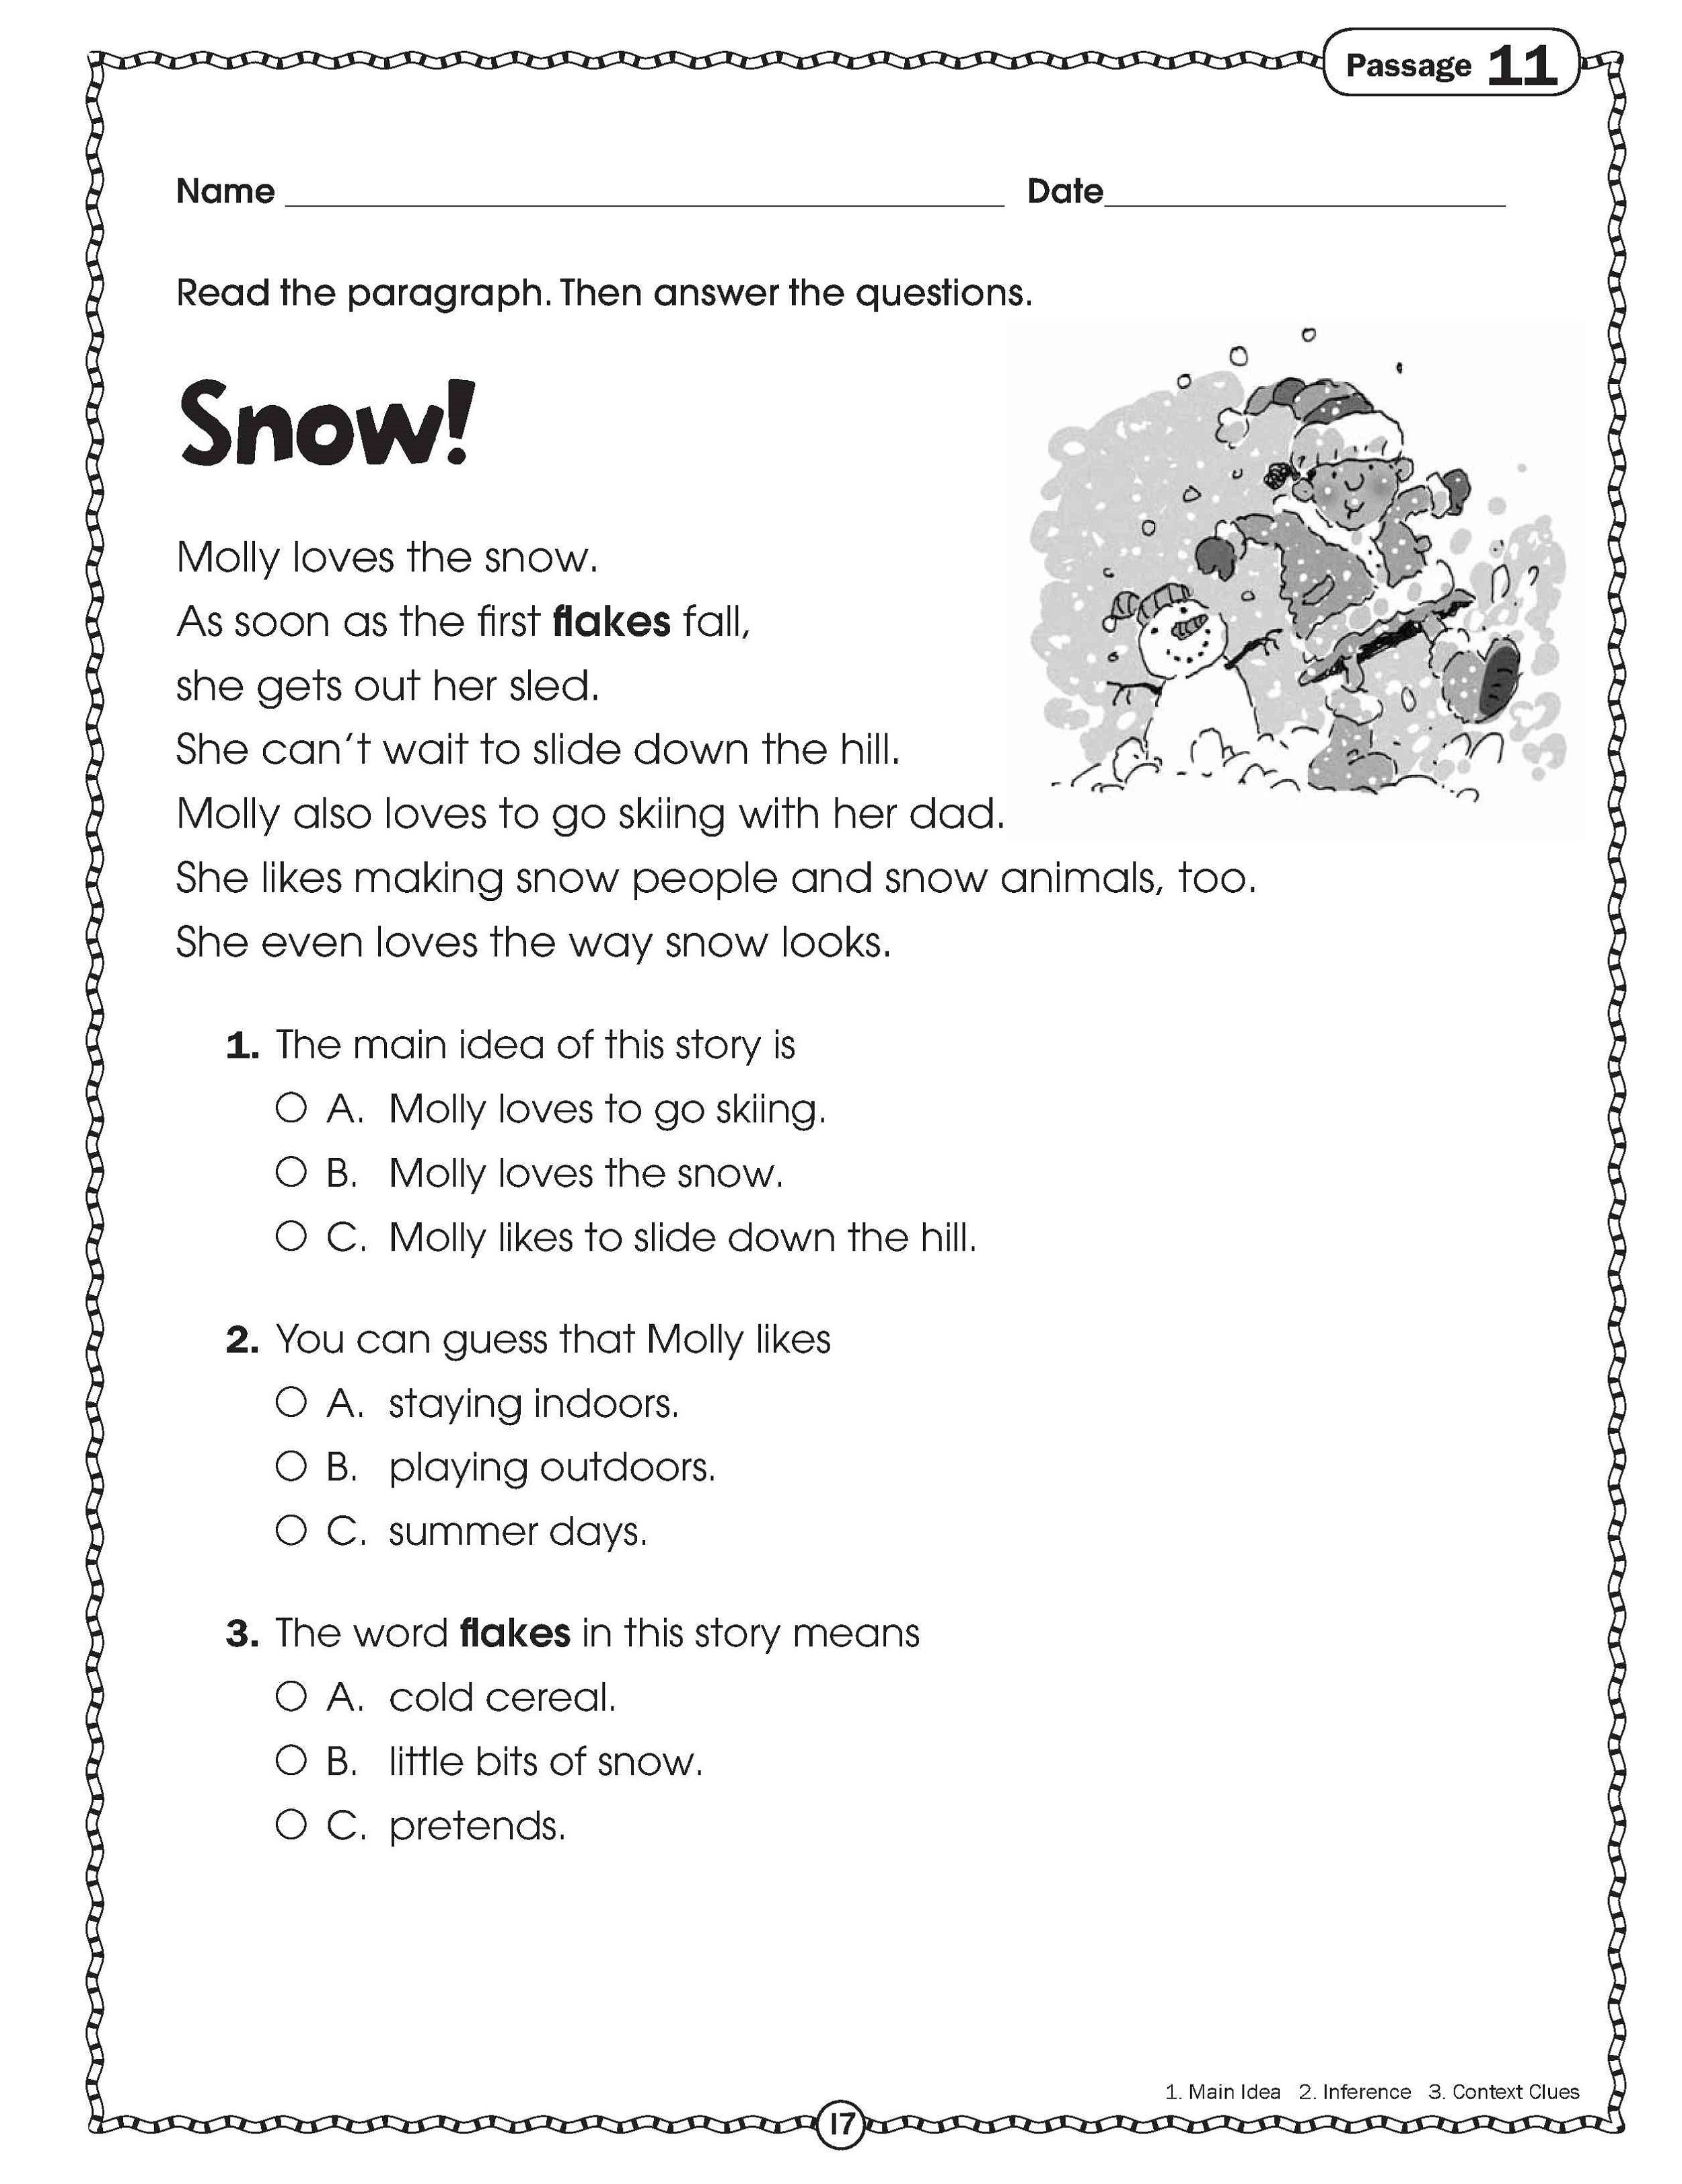 medium resolution of Free Handouts for Learning   Reading comprehension worksheets